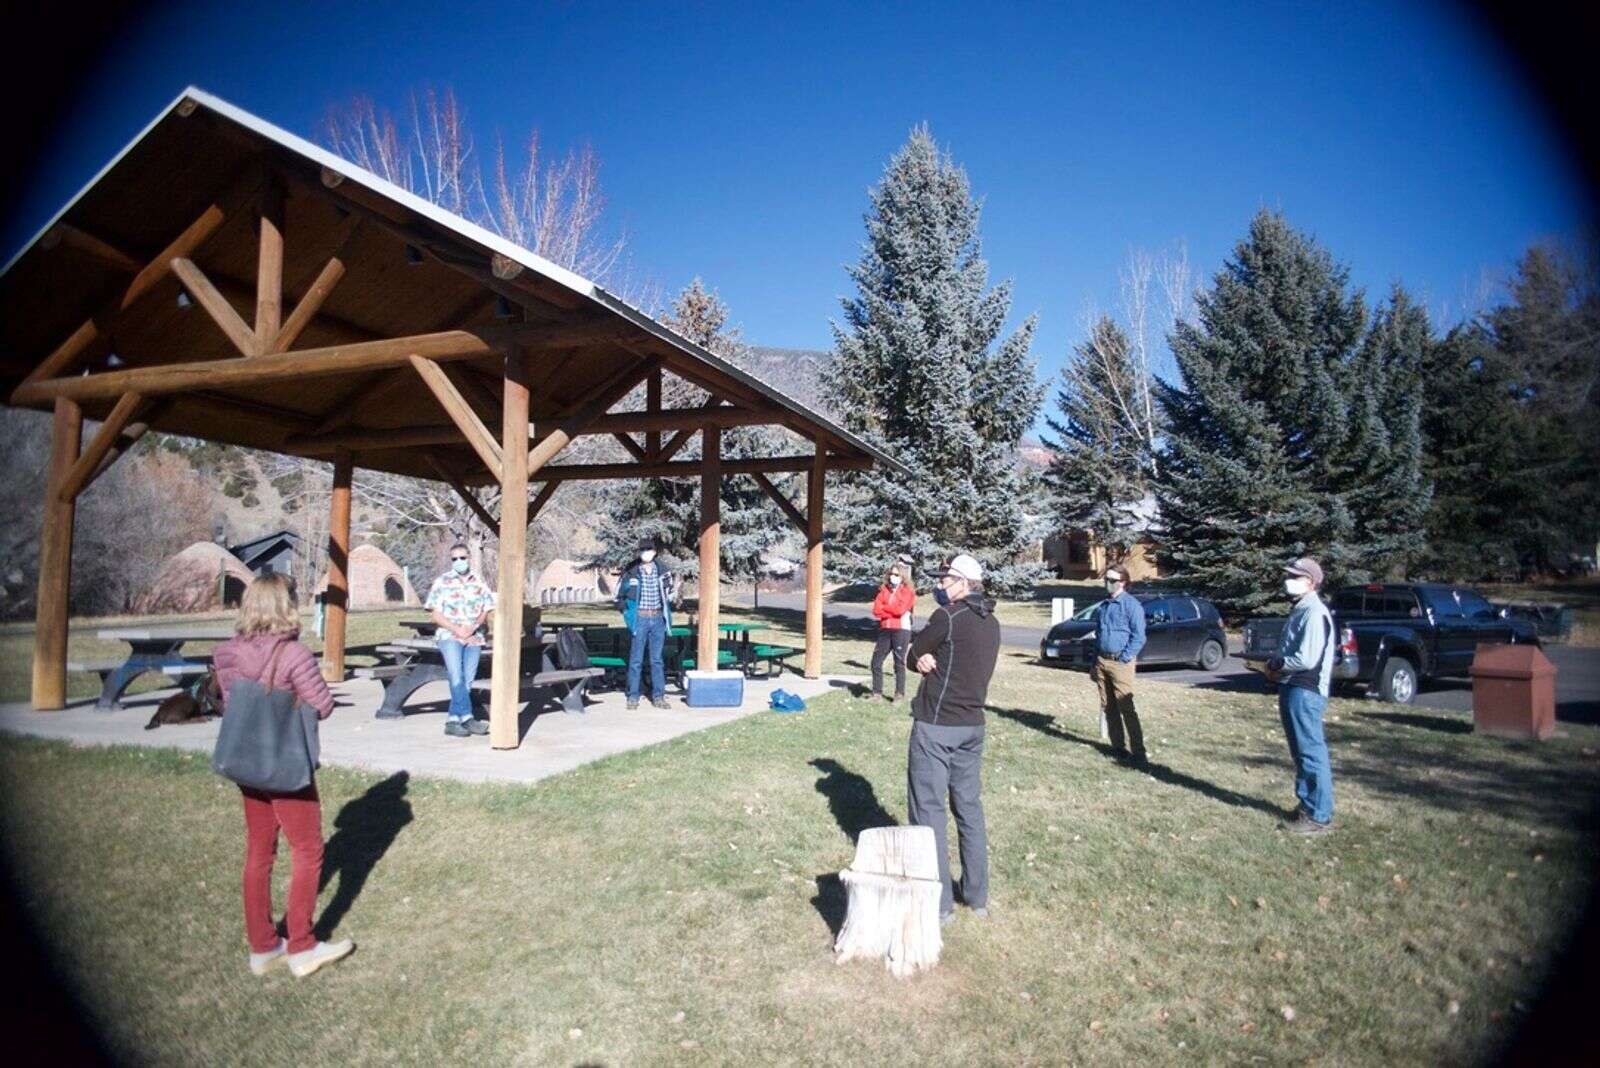 Roaring Fork Outdoor Volunteers celebrated its 25th anniversary with a socially distanced gathering in Arbaney Park on Dec. 5.| Courtesy photo